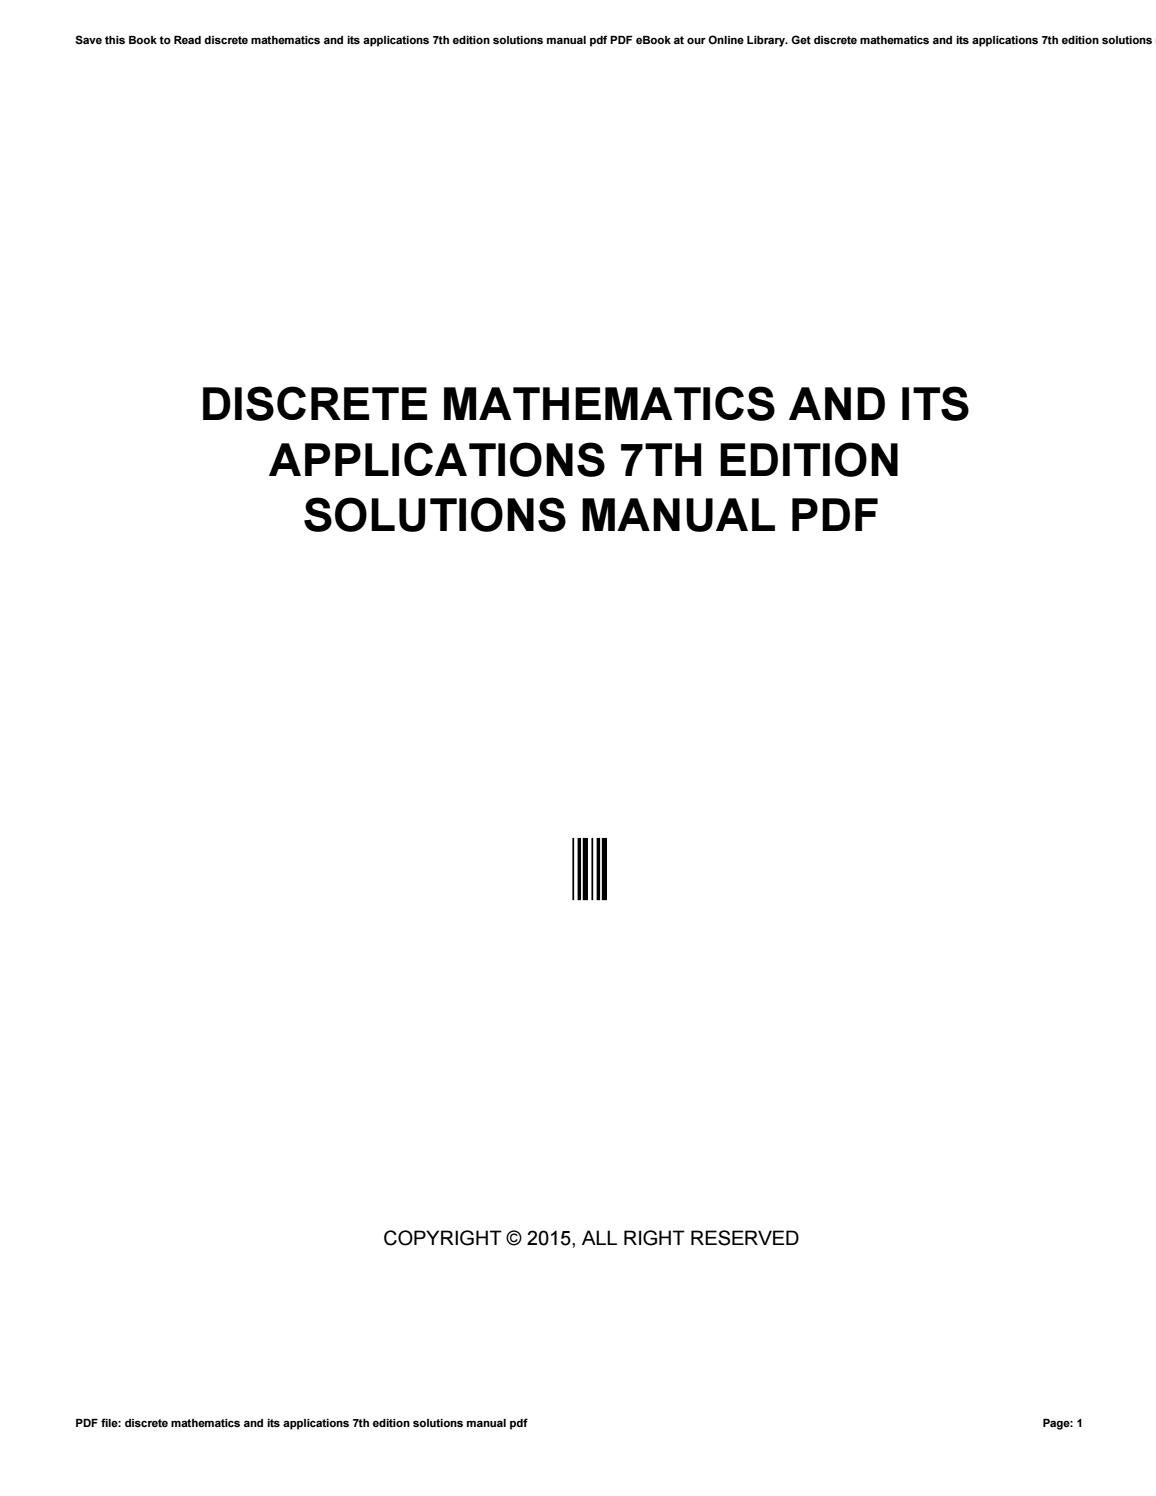 Discrete mathematics and its applications 7th edition solutions manual pdf  by nugroho94dwie - issuu